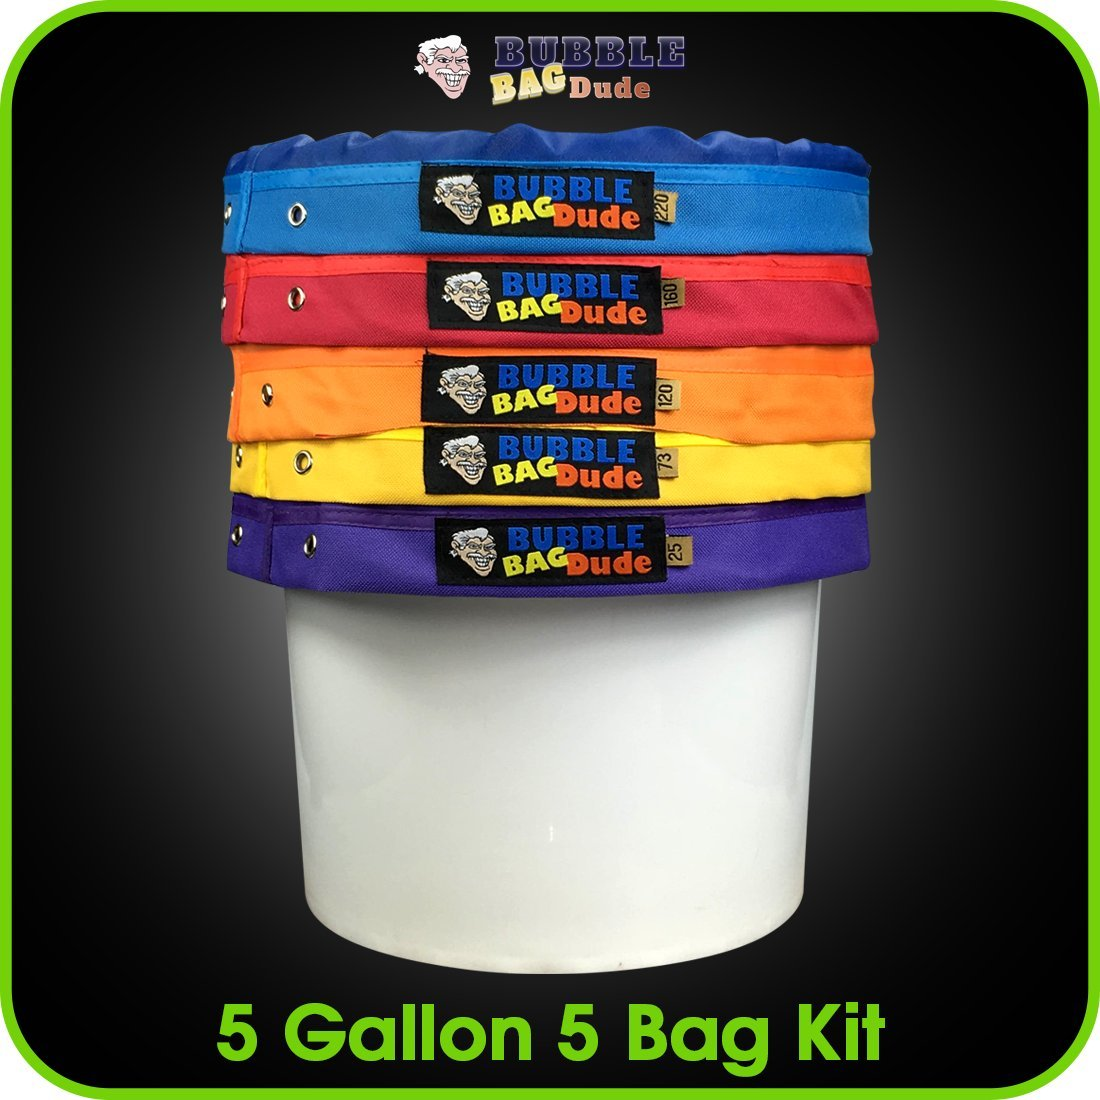 BUBBLEBAGDUDE Bubble Bags 5 Gallon 5 Bag Set - Herbal Ice Bubble Bag Essence Extractor Kit - Comes with Pressing Screen and Storage Bag by BUBBLEBAGDUDE (Image #4)